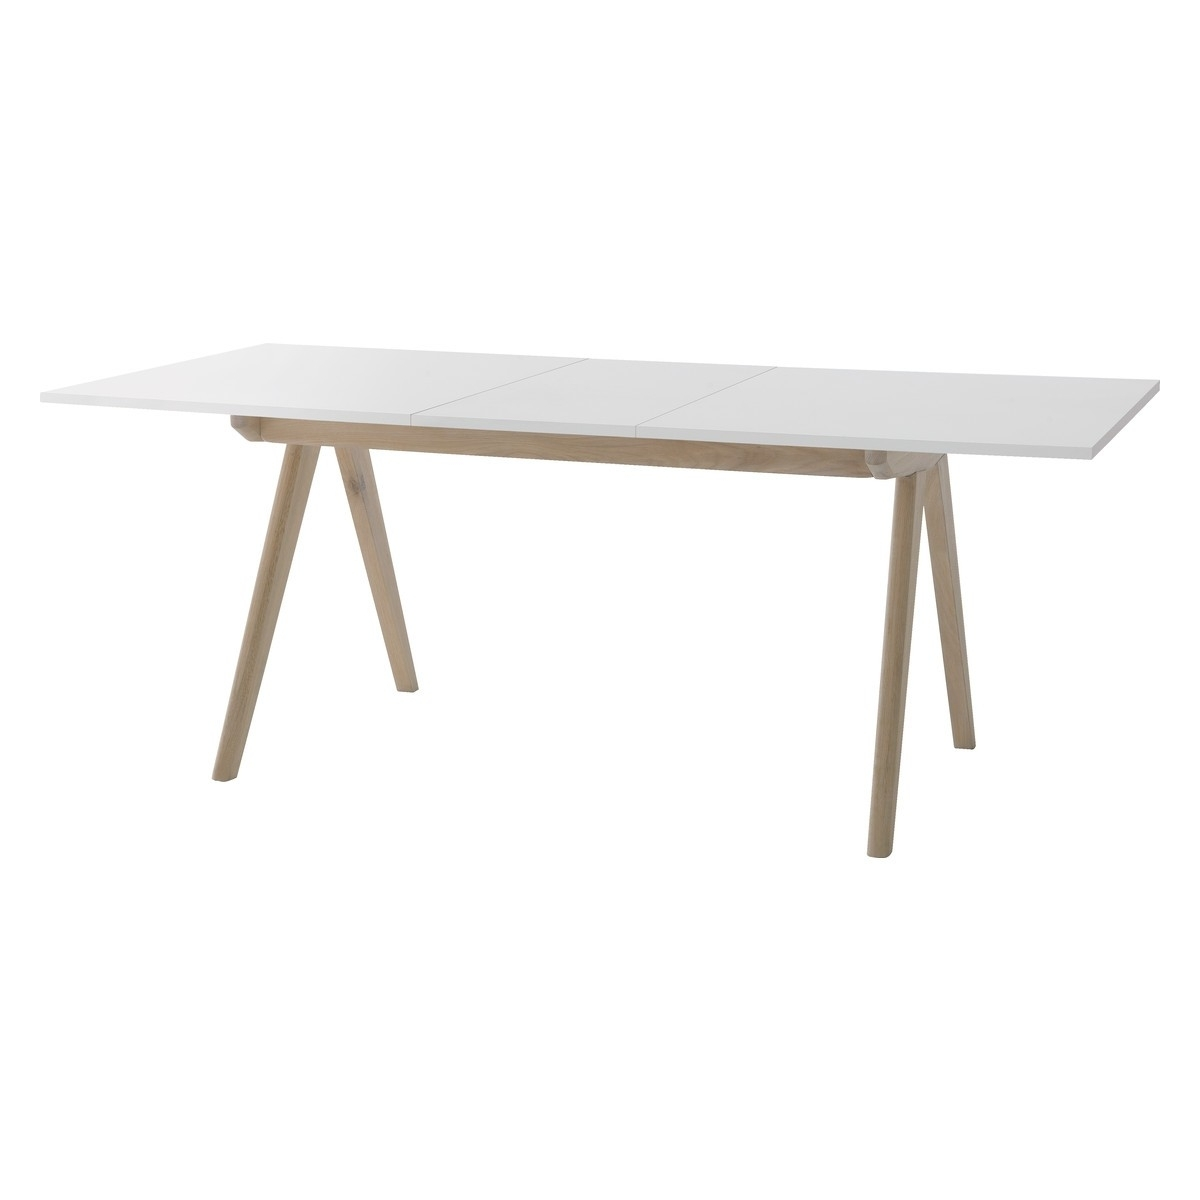 Buy Now At Habitat Uk Inside Next White Dining Tables (View 6 of 25)